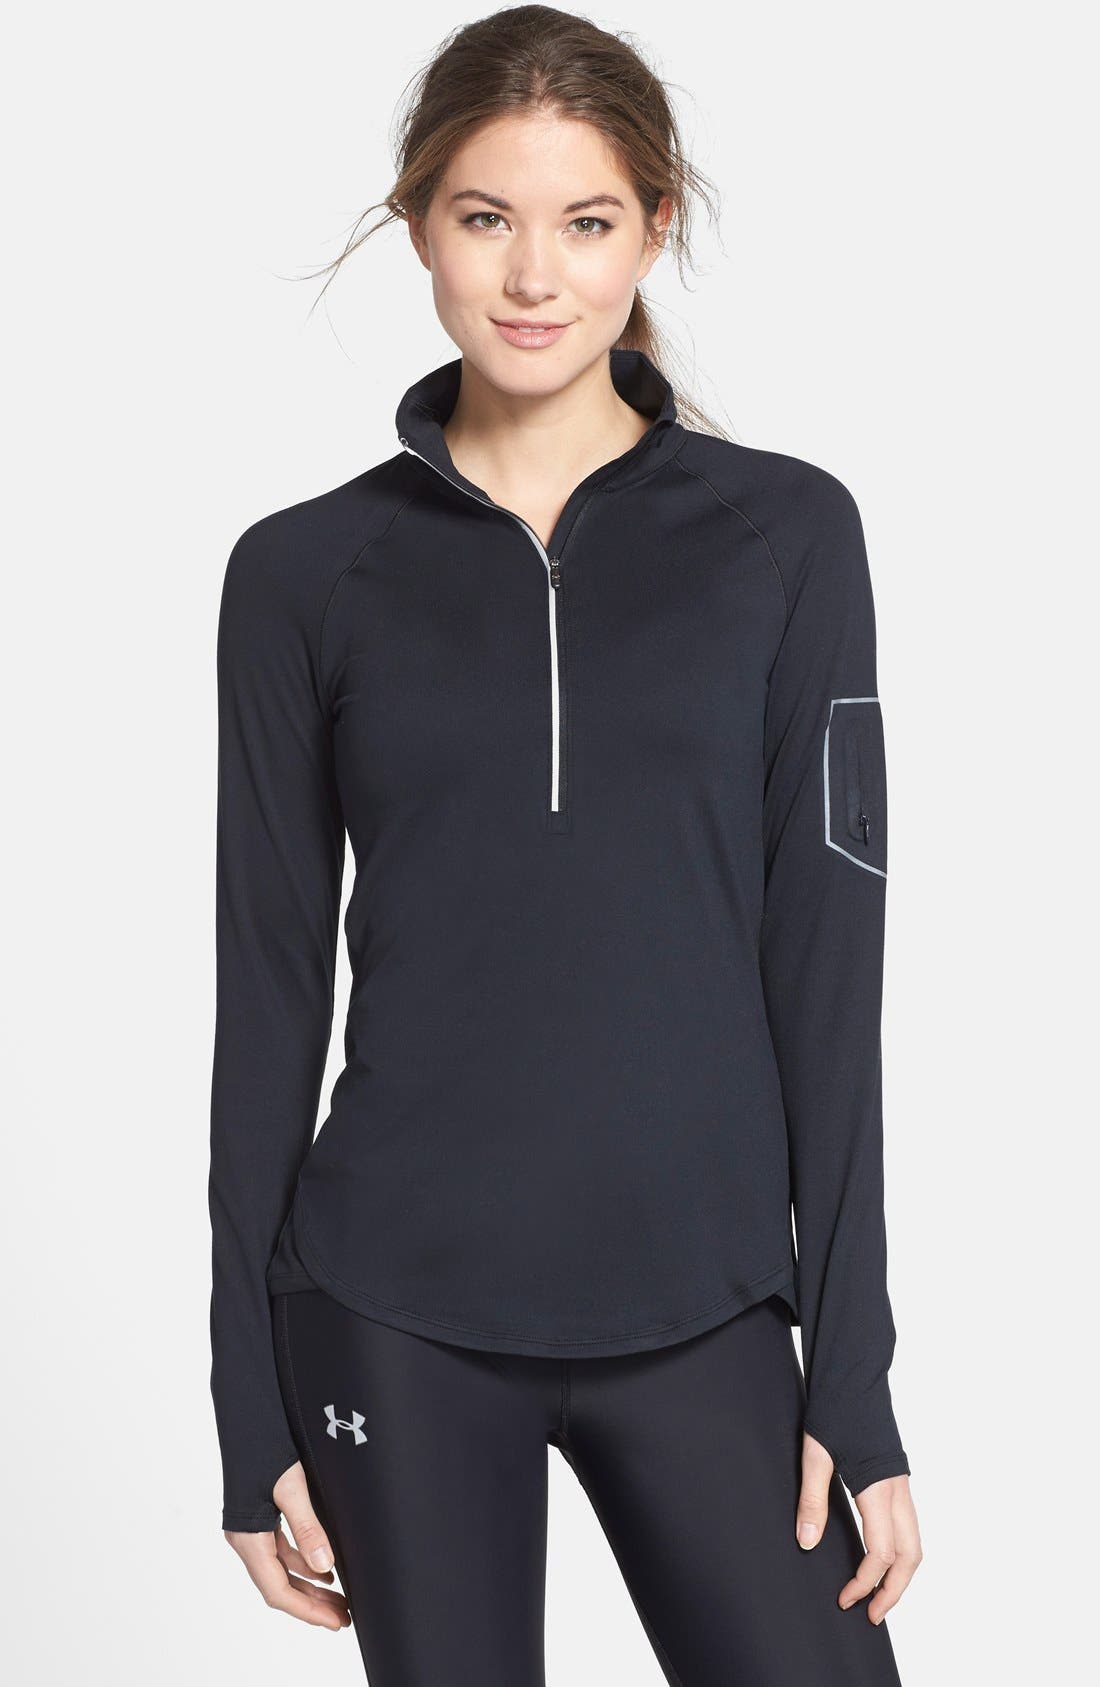 Alternate Image 1 Selected - Under Armour 'Fly Fast' Half Zip Long Sleeve Top